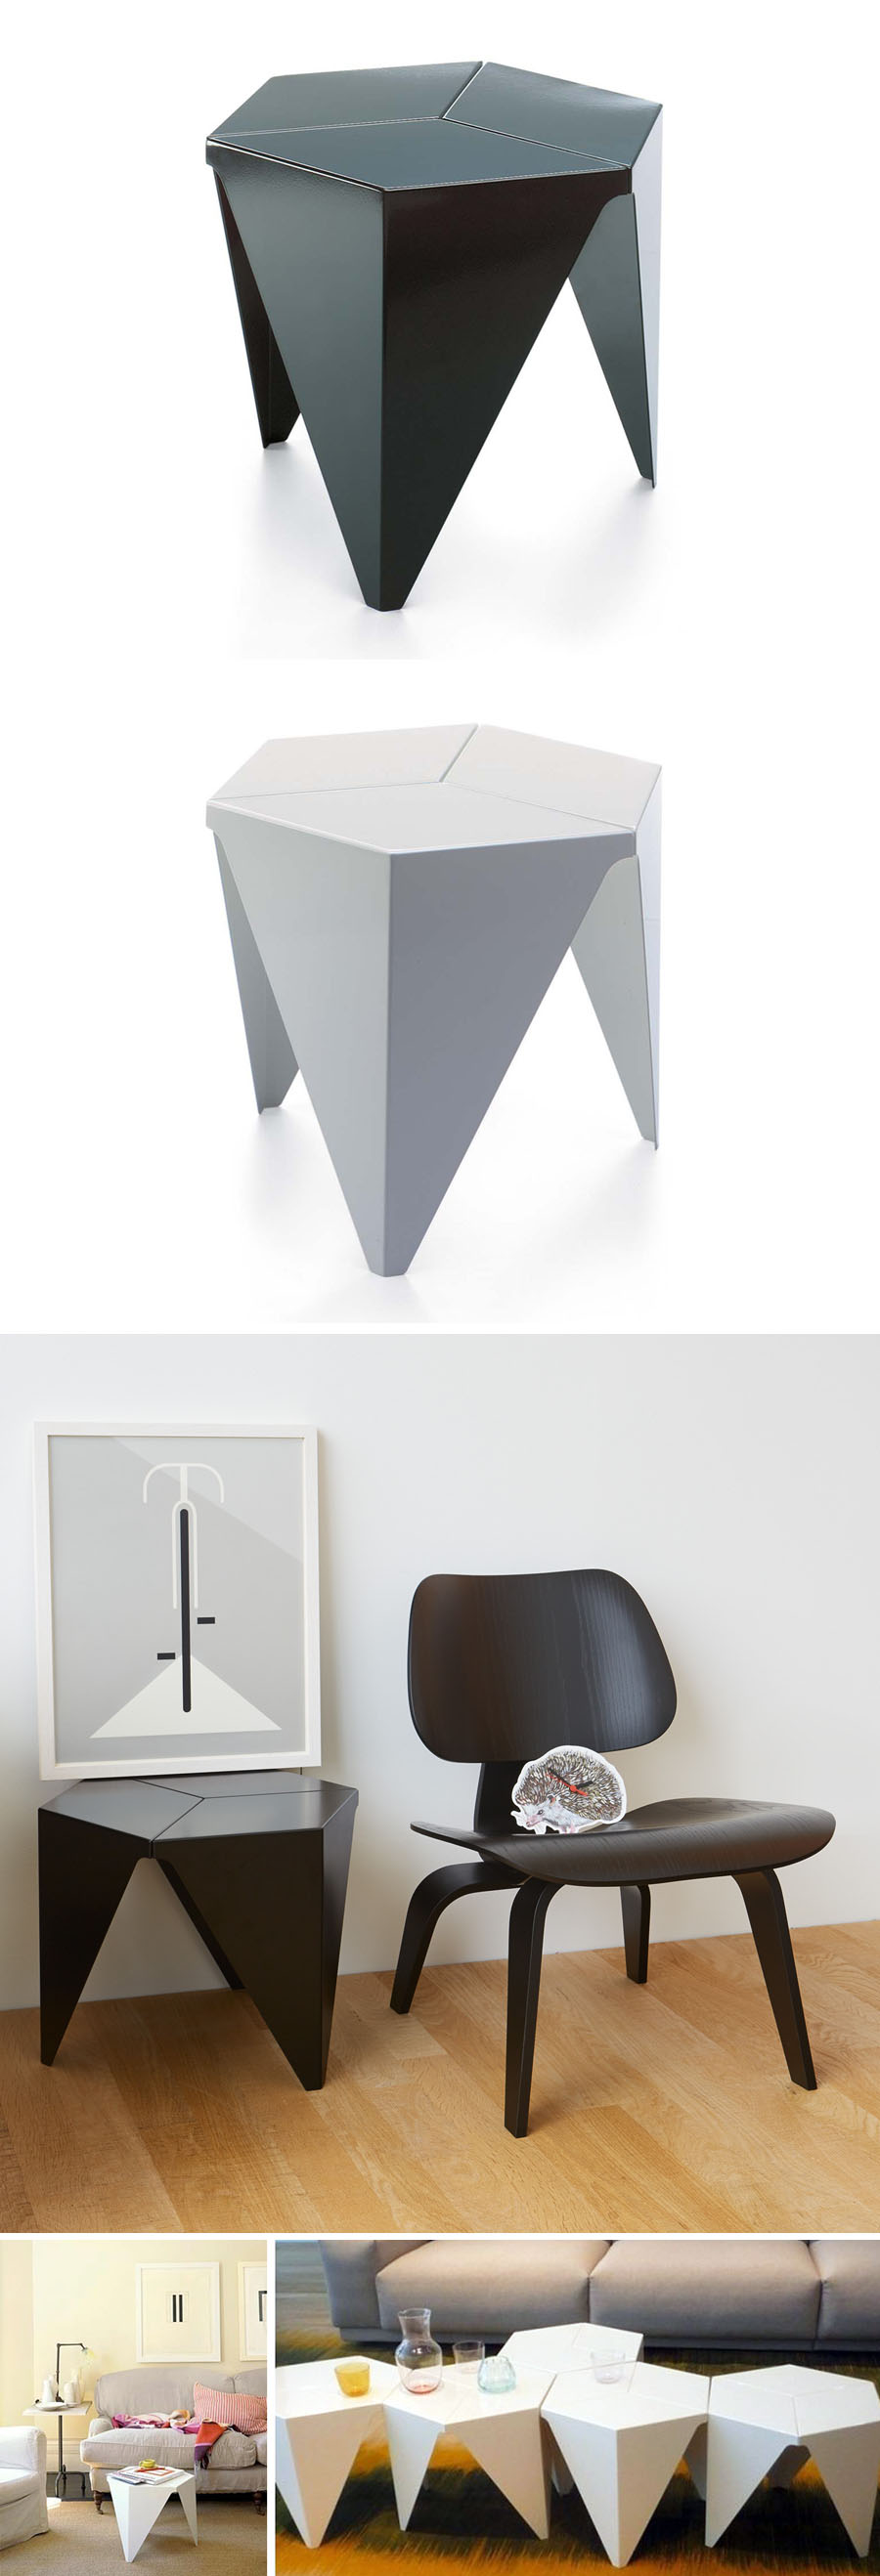 Vitra Design Aluminum Prismatic 15 inch Side Table from Isamu